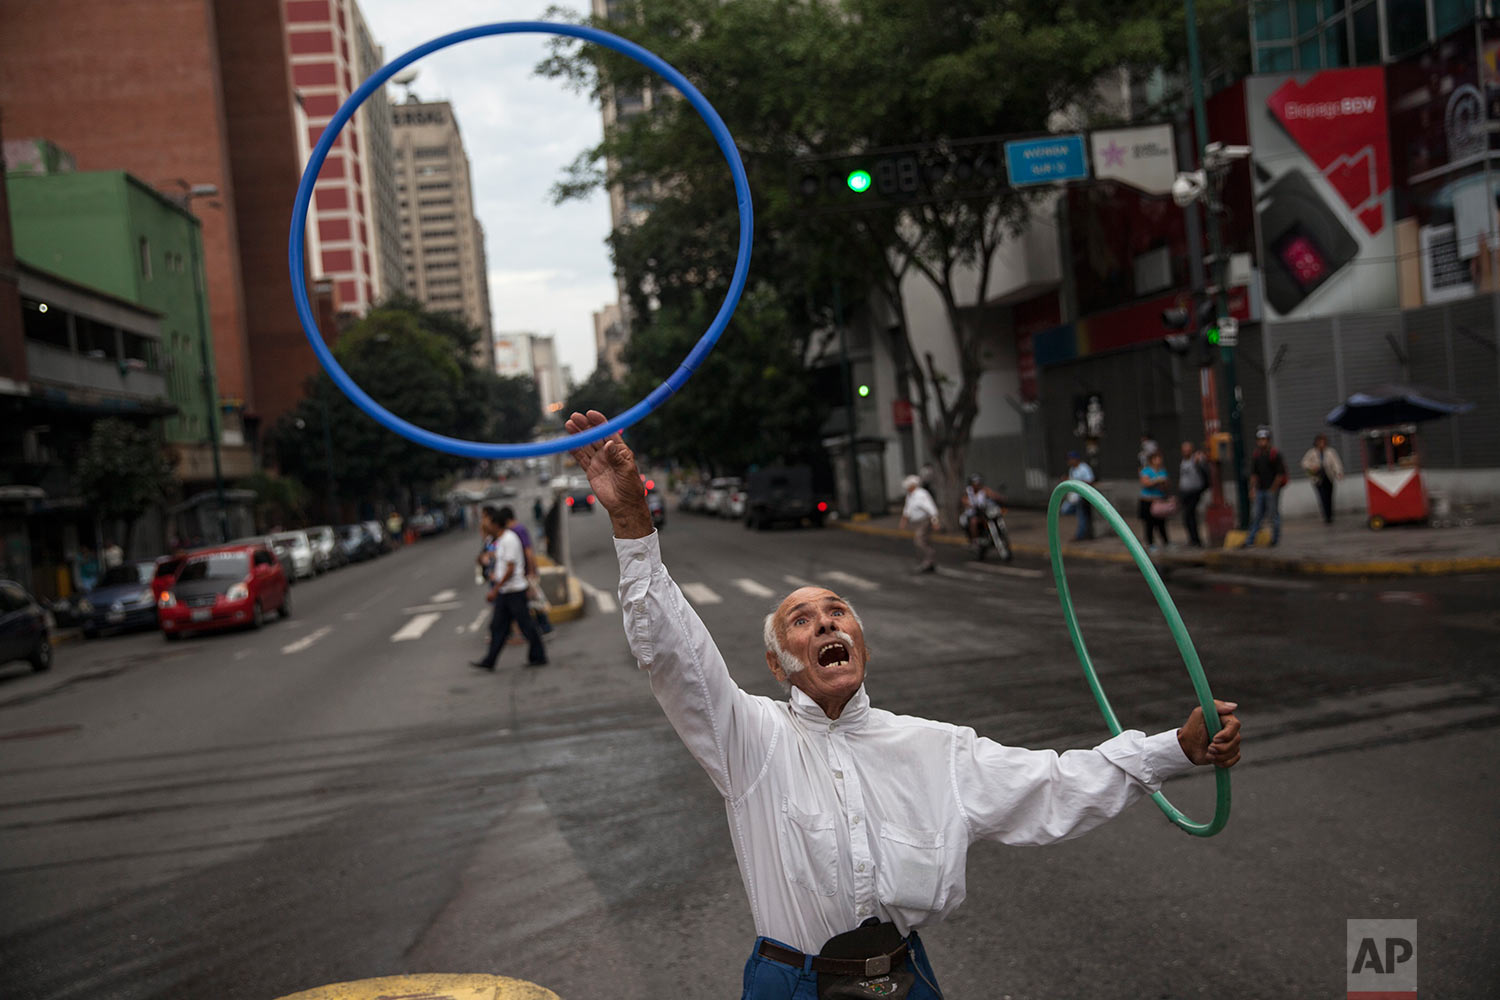 """Jose Bestilleiro, 83, from Spain, performs for tips at an street intersection in downtown Caracas, Venezuela, Sunday, Oct. 29, 2017. Bestilleiro said he's been performing every day for the past 15 years, and brings in at least 5,000 Bolivars a day, which on the black market is 11 cents and is the price of a cheap """"arepa"""" sandwich. (AP Photo/Rodrigo Abd)"""